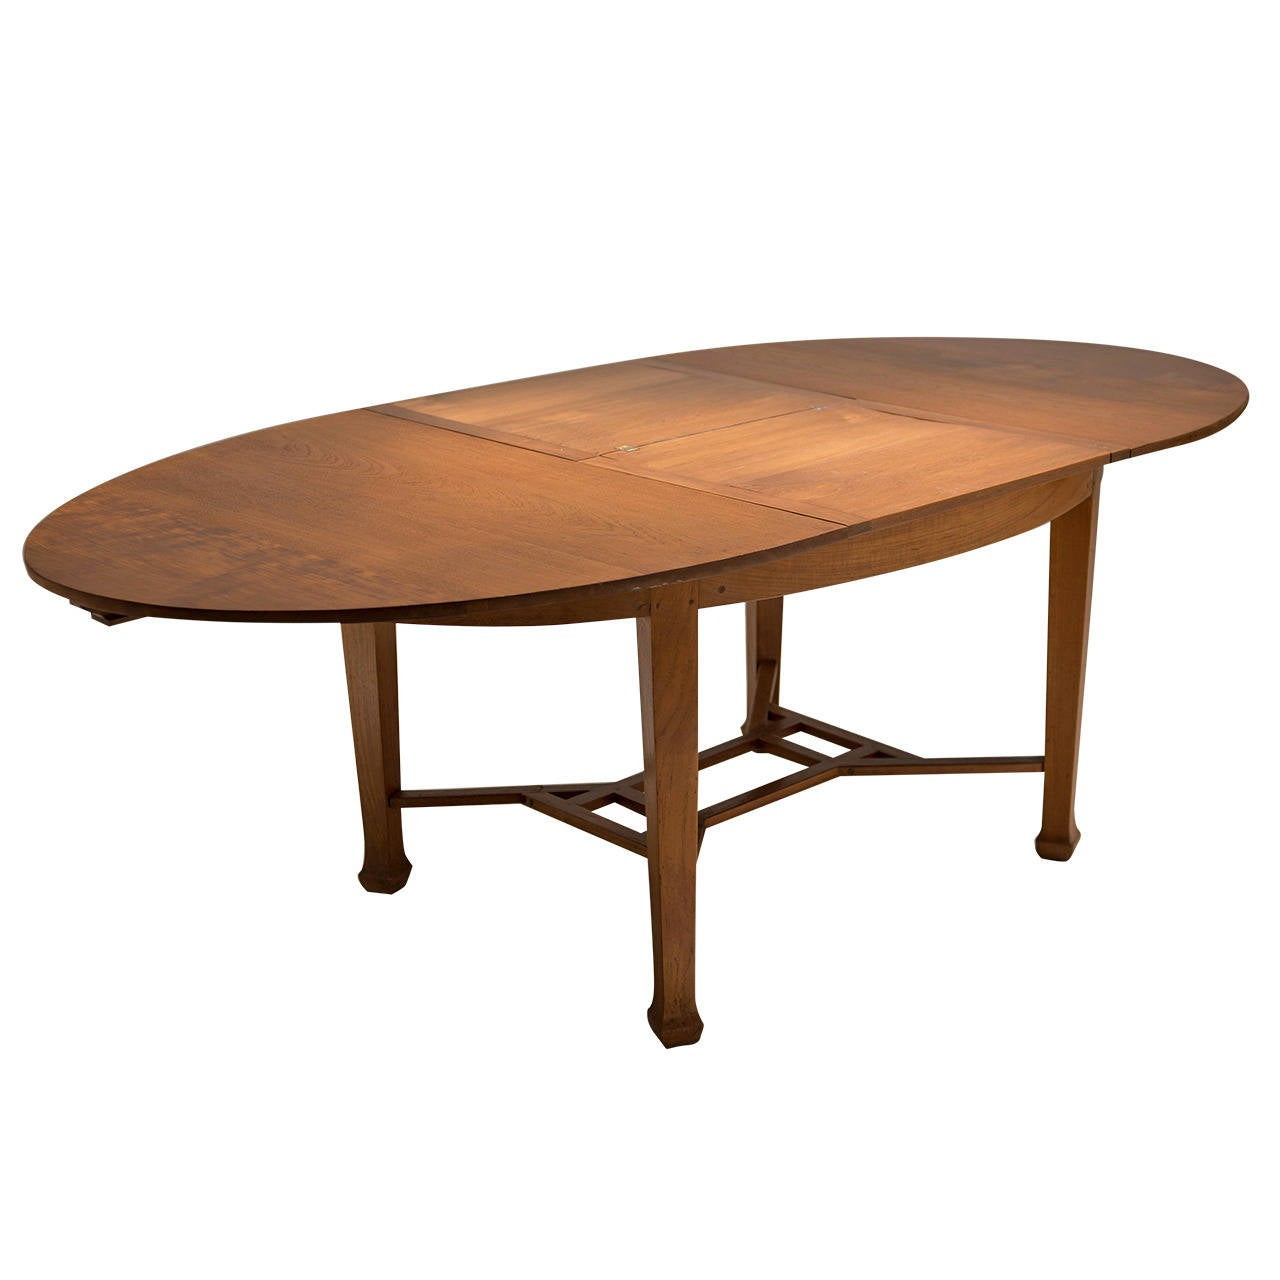 Old Colonial Dining Table With Leaf, Indonesia, Circa 1930